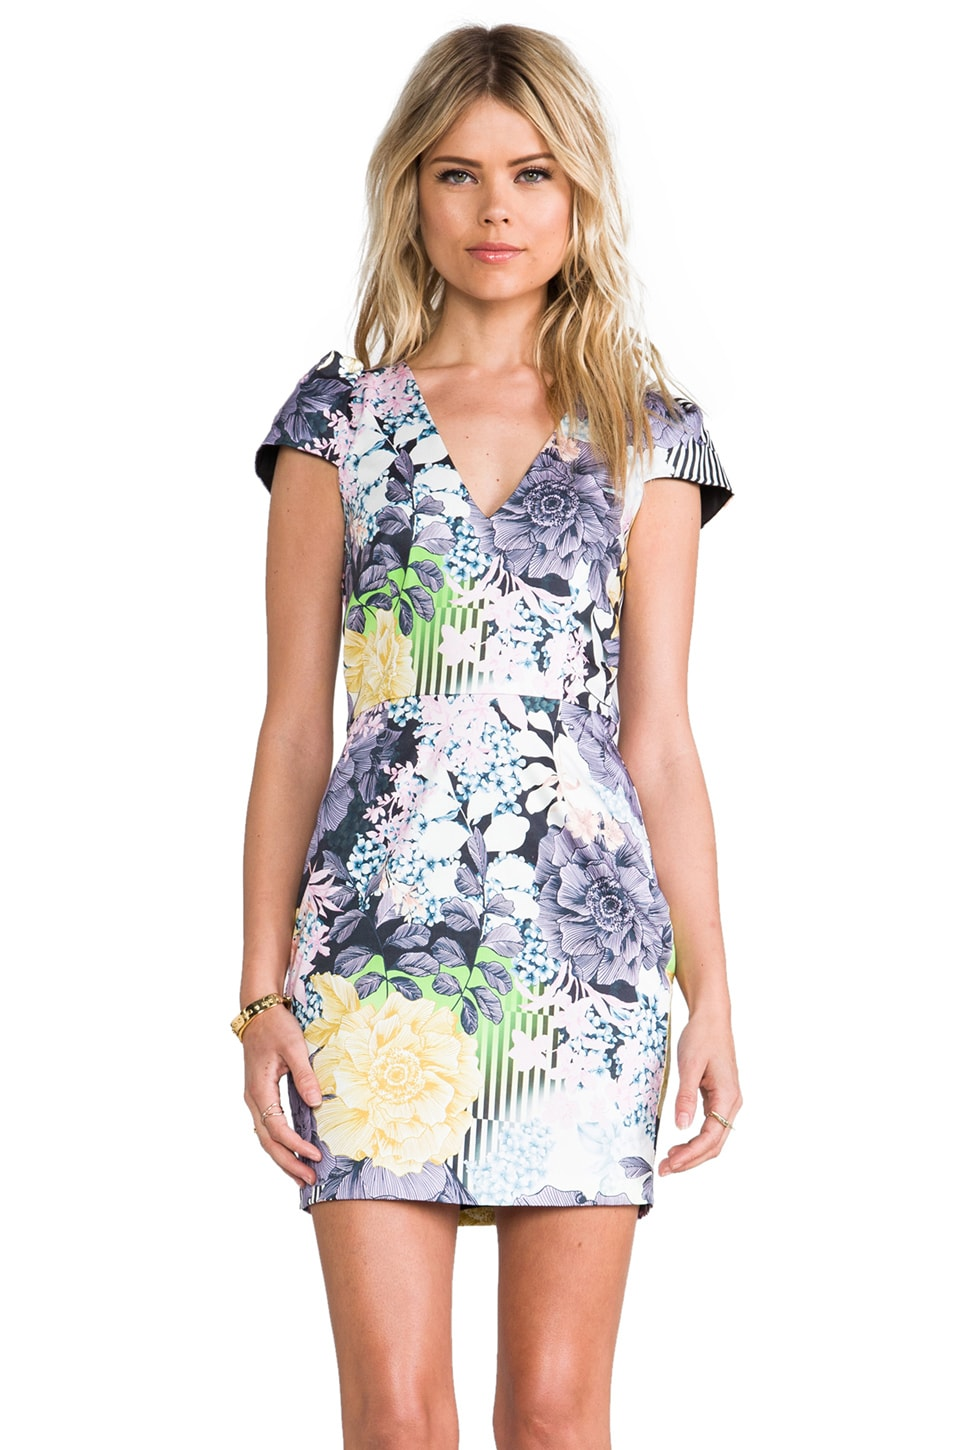 Talulah Glistening Rain Dress in Floral